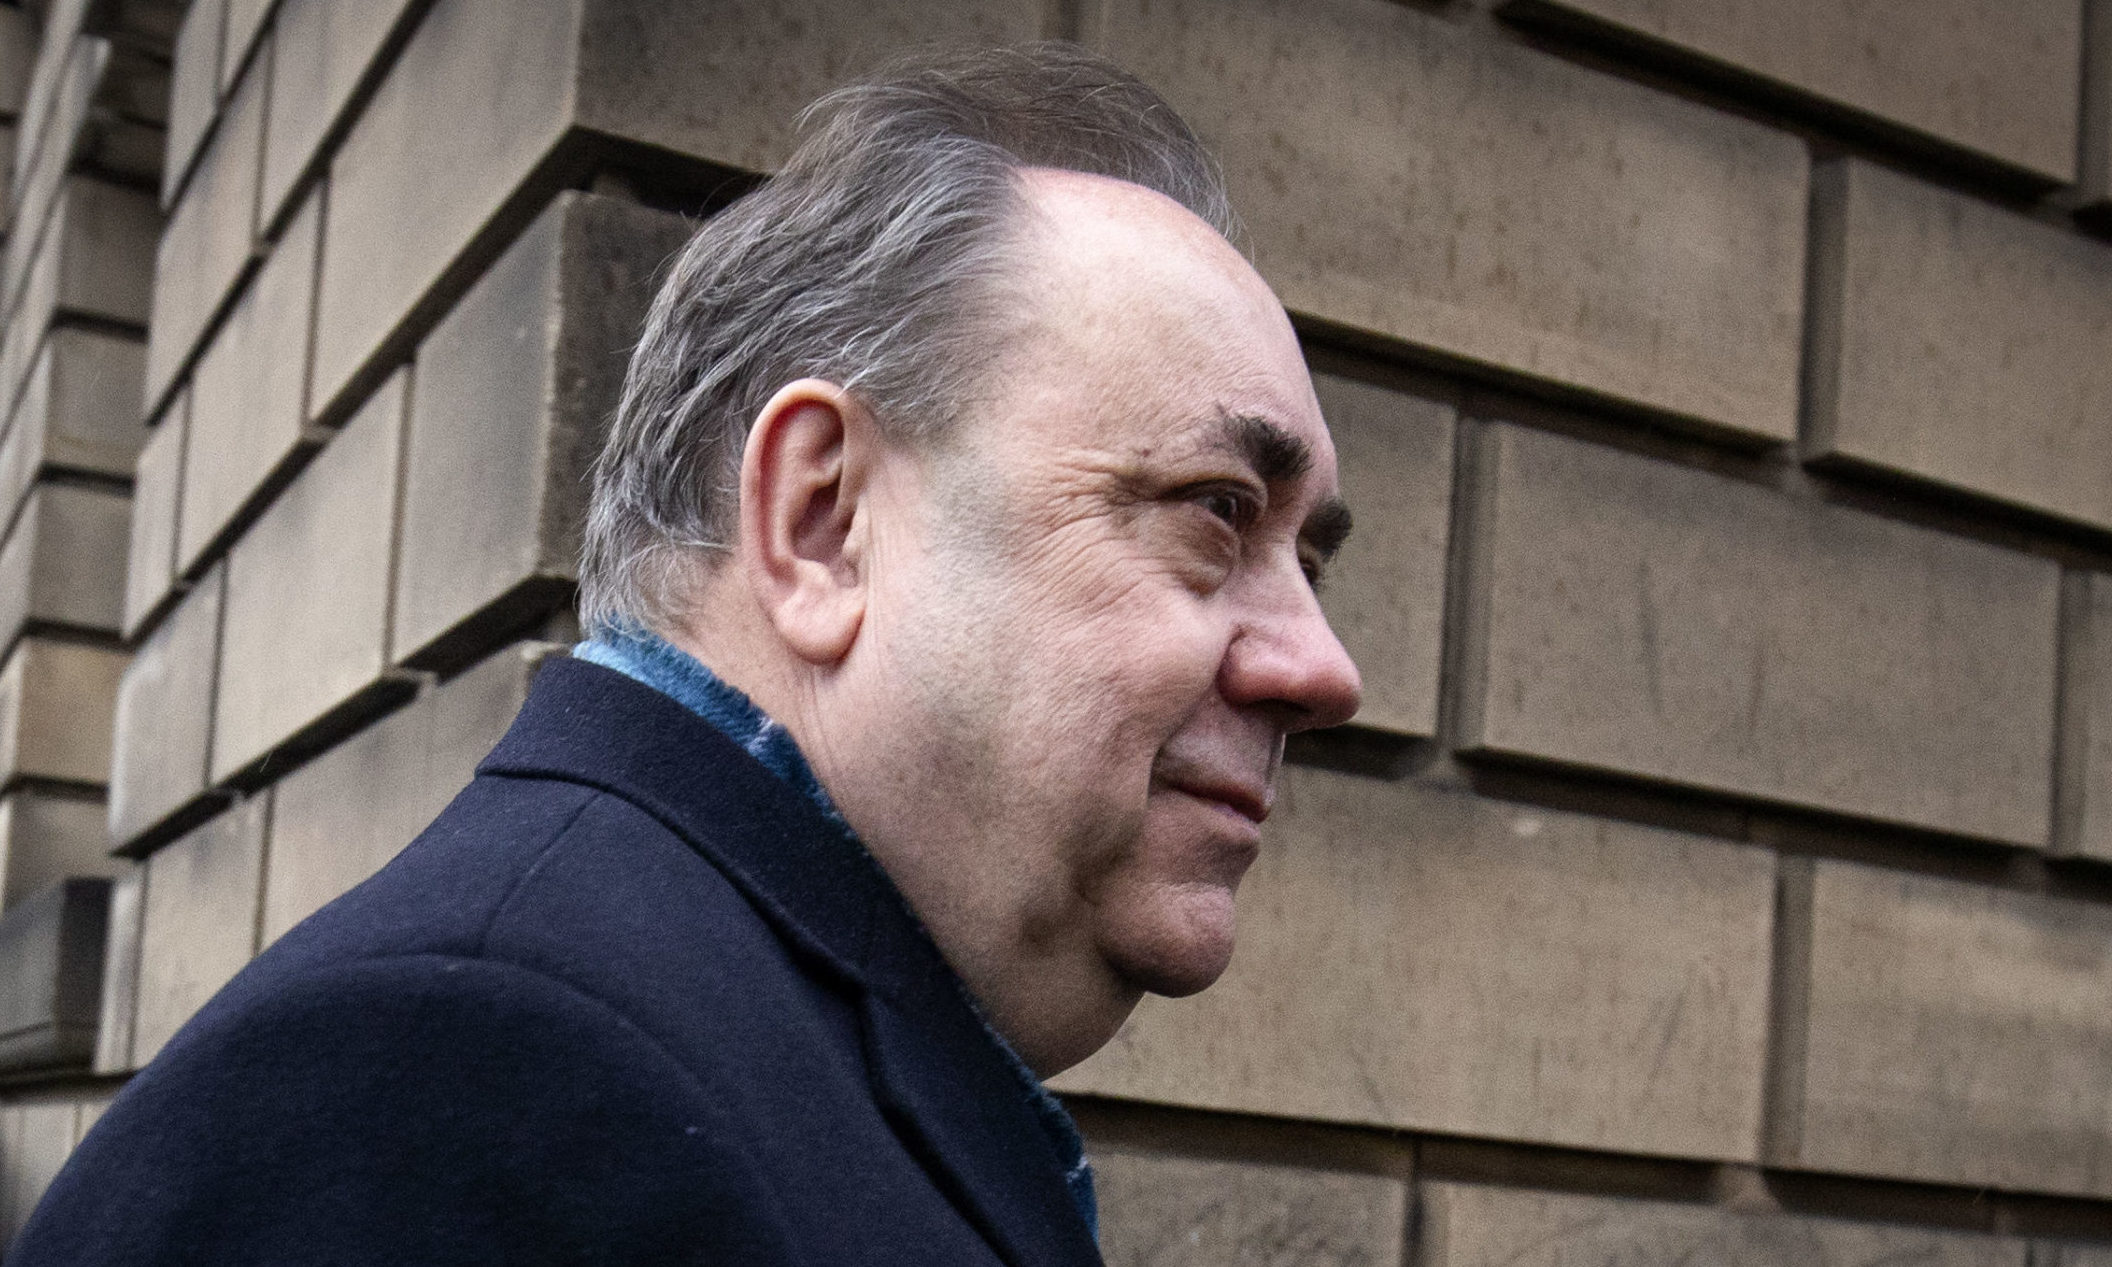 Former Scottish first minister Alex Salmond leaving the High Court in Edinburgh, on the first day of his trial over accusations of sexual assault, including one of attempted rape.